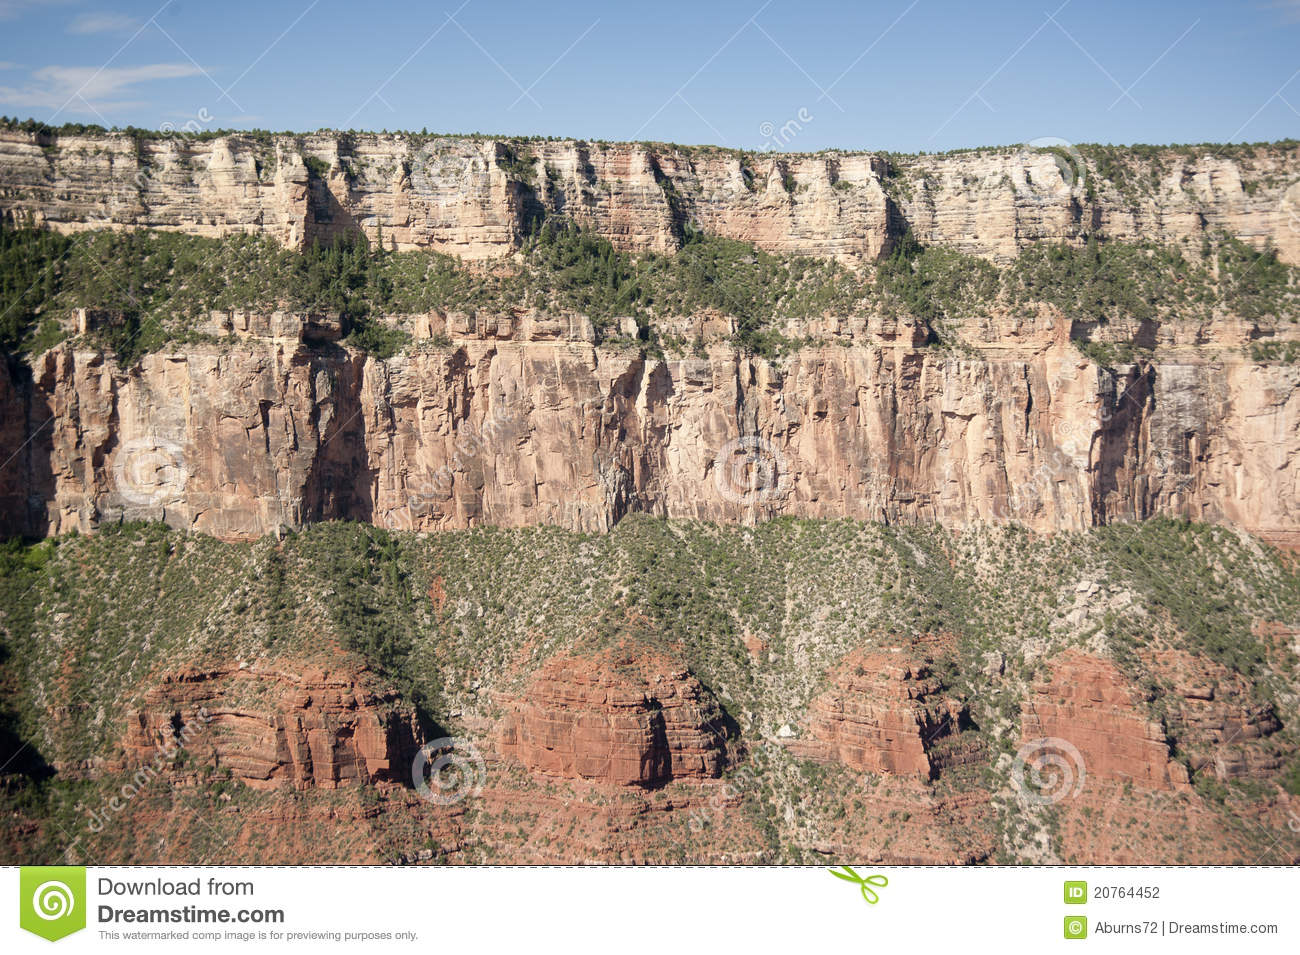 grand canyon map usa with Stock Photography Grand Canyon Cliff Image20764452 on Arches together with S535 F2 Exemples D Itineraires likewise Palace Versailles France additionally 15 together with Us Map And Capitals List Us Map With States Capitals And Abbreviations Quiz 85 Simple With Us Map With States Capitals And Abbreviations Quiz.